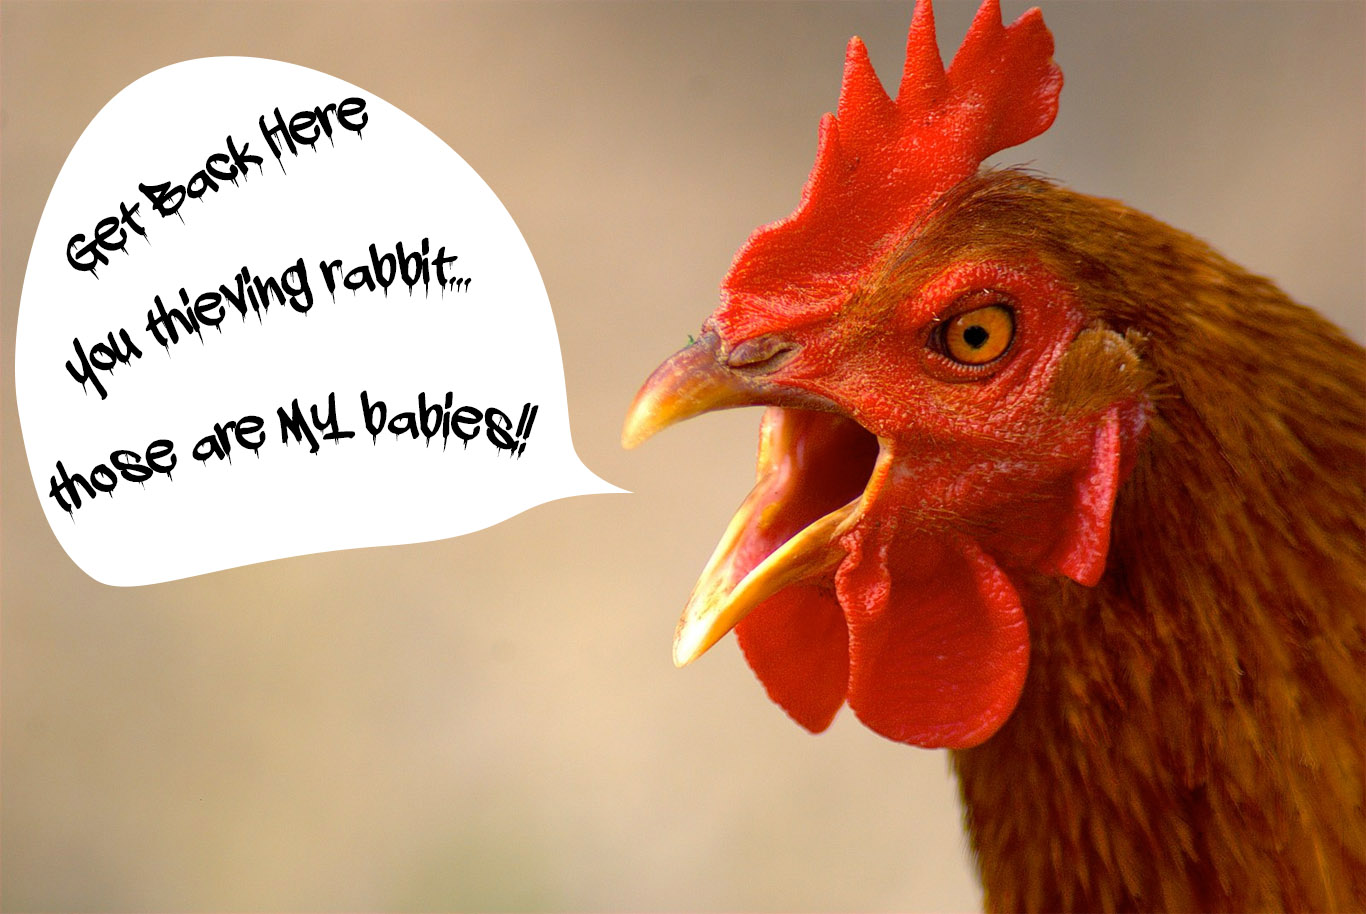 Chicken Quotes And Sayings: Annoying Rooster Quotes And Sayings. QuotesGram